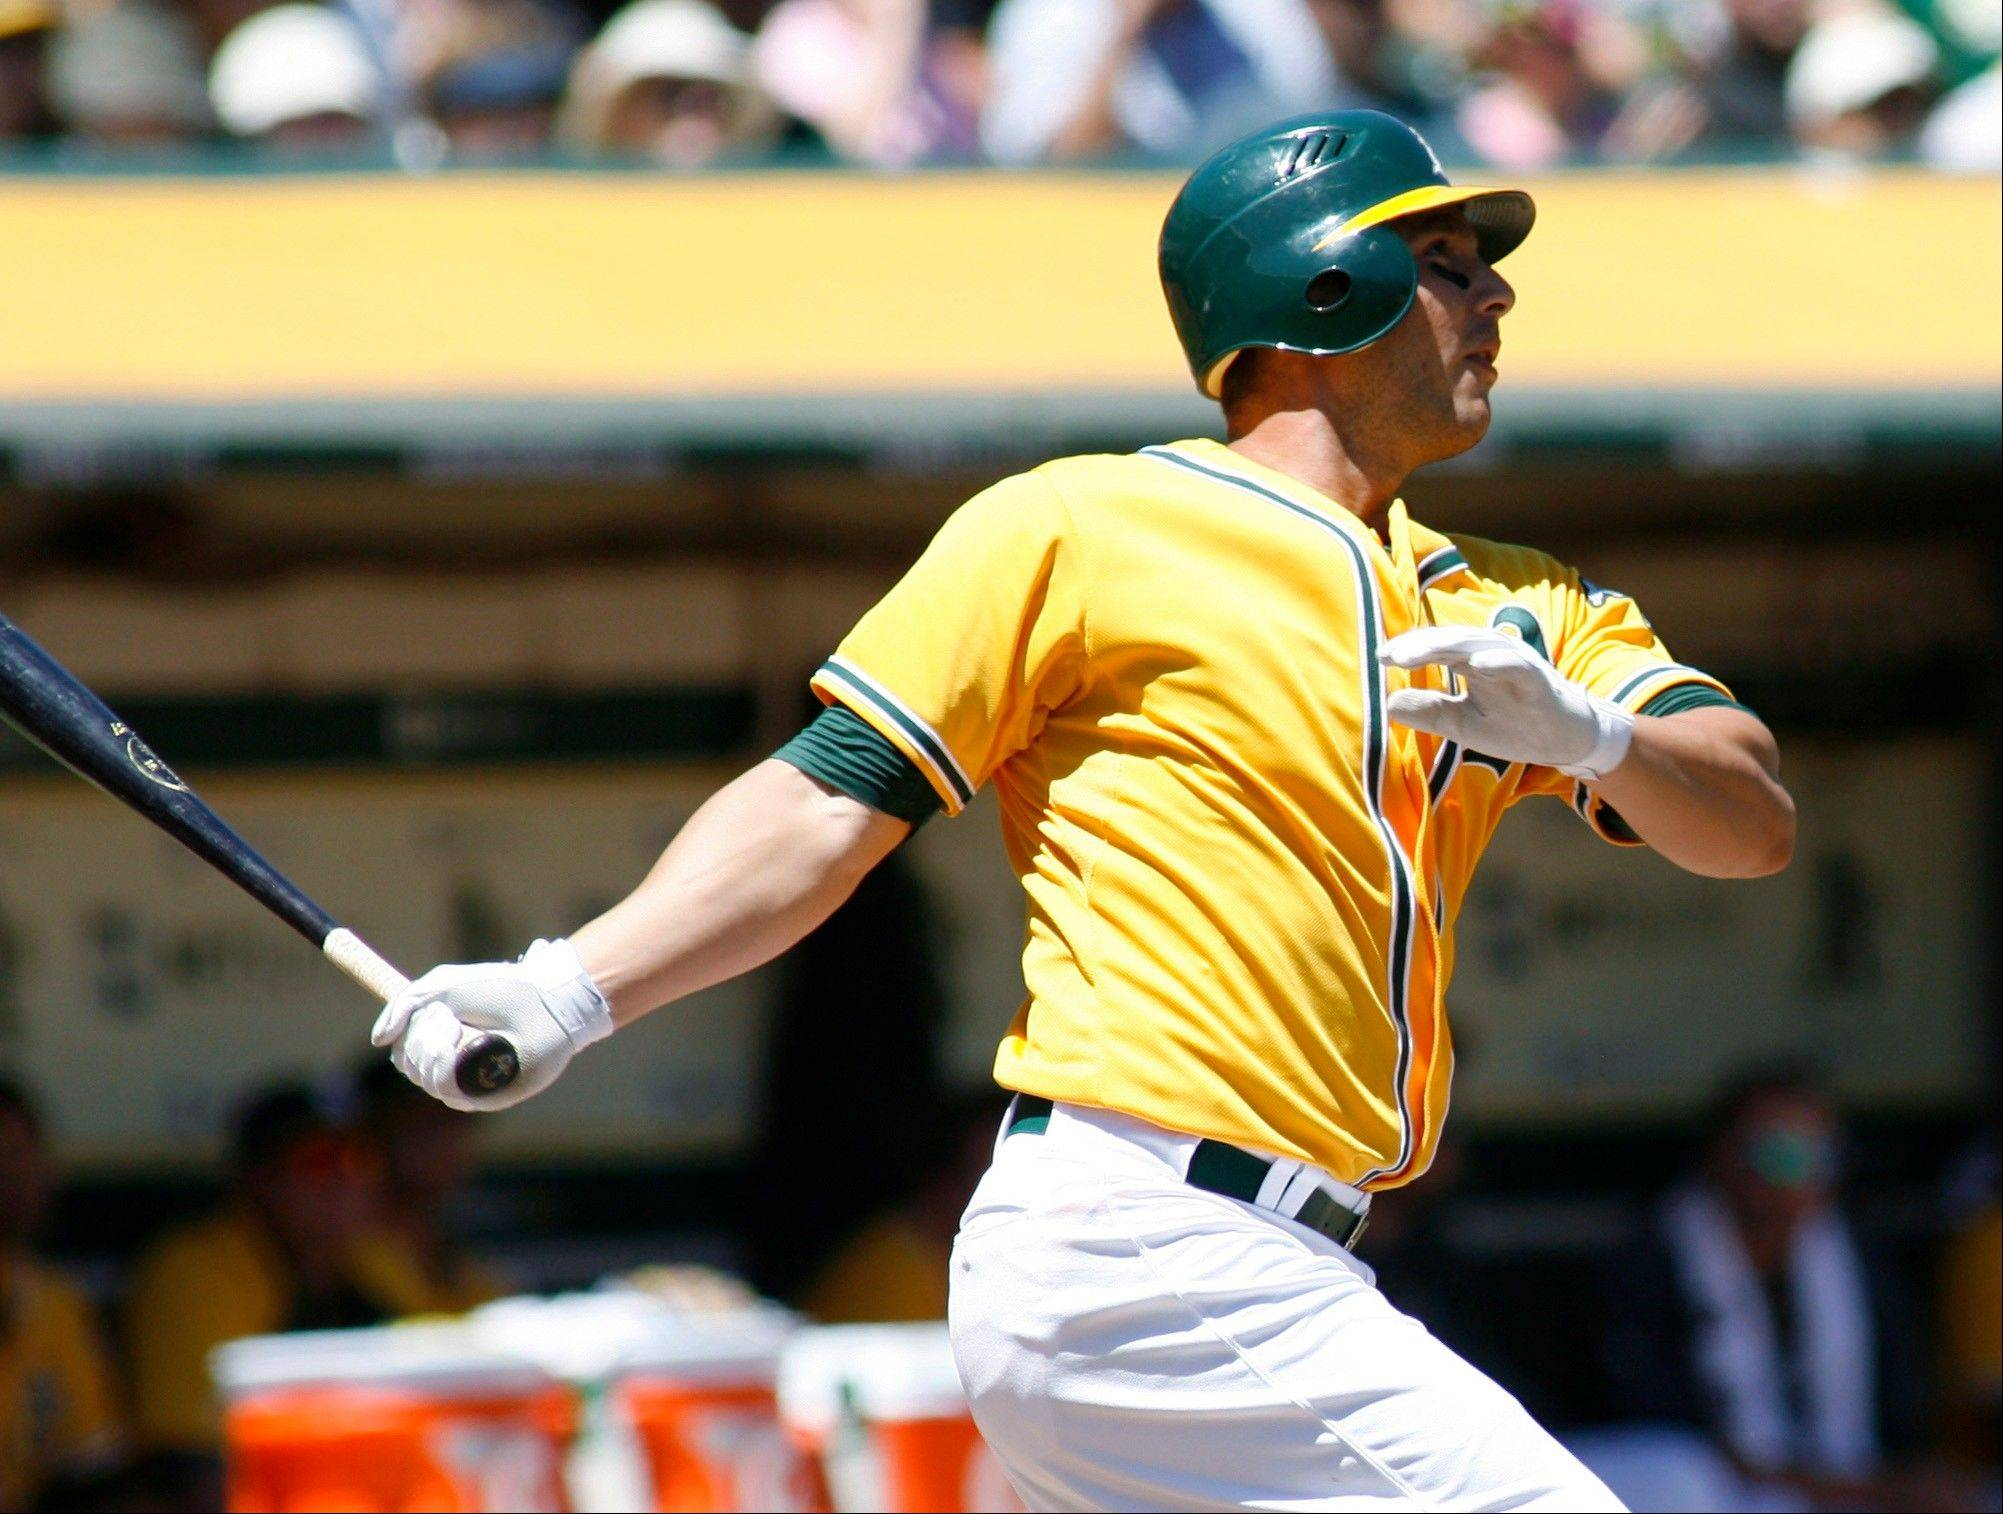 The Oakland Athletics' George Kottaras follows through on a two-run home run against the Los Angeles Angels Wednesday during the second inning in Oakland, Calif.